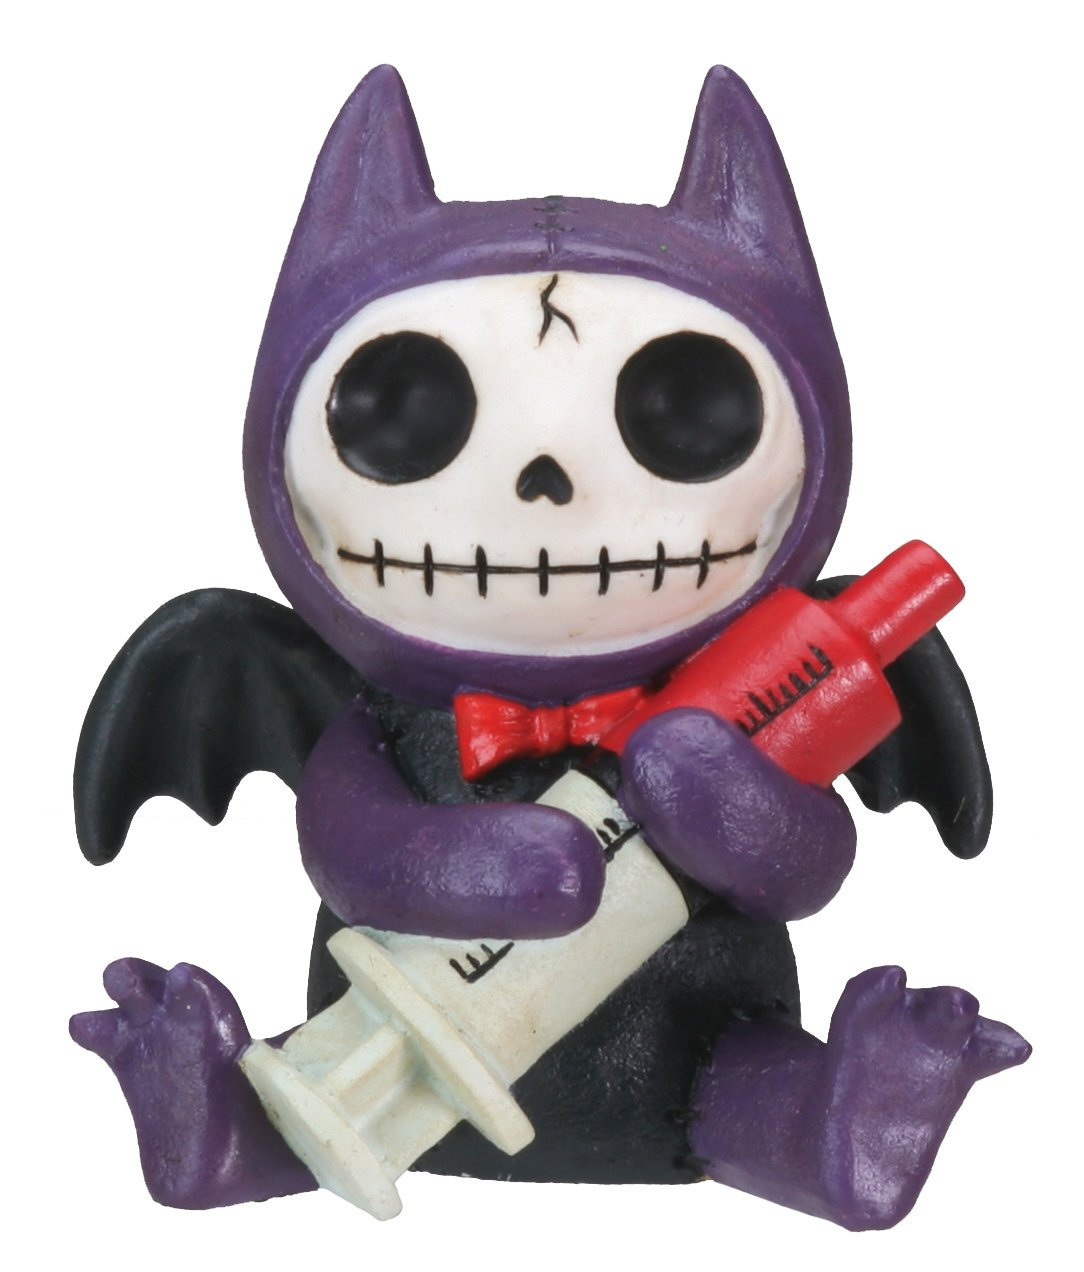 Furrybone Flappy Vampire Bat Furry Bones Statue Display